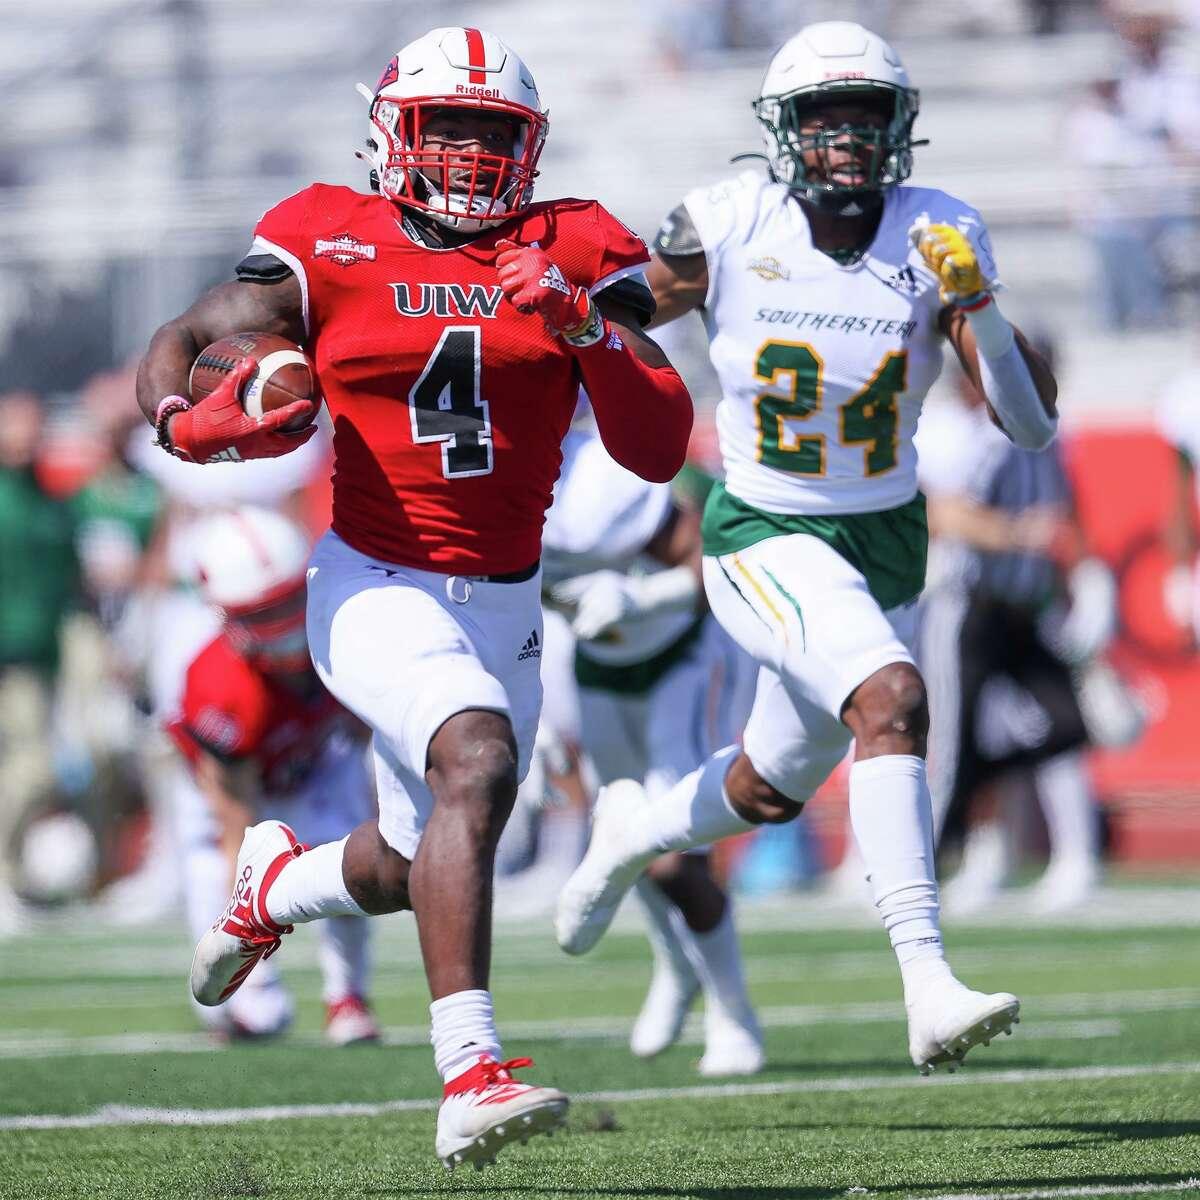 UIW's Kevin Brown breaks free for a 75-yard touchdown run in the second quarter of their first home game of the spring Southland Conference season against Southeastern Louisiana at Gayle and Tom Benson Stadium on Saturday, March 20, 2021.